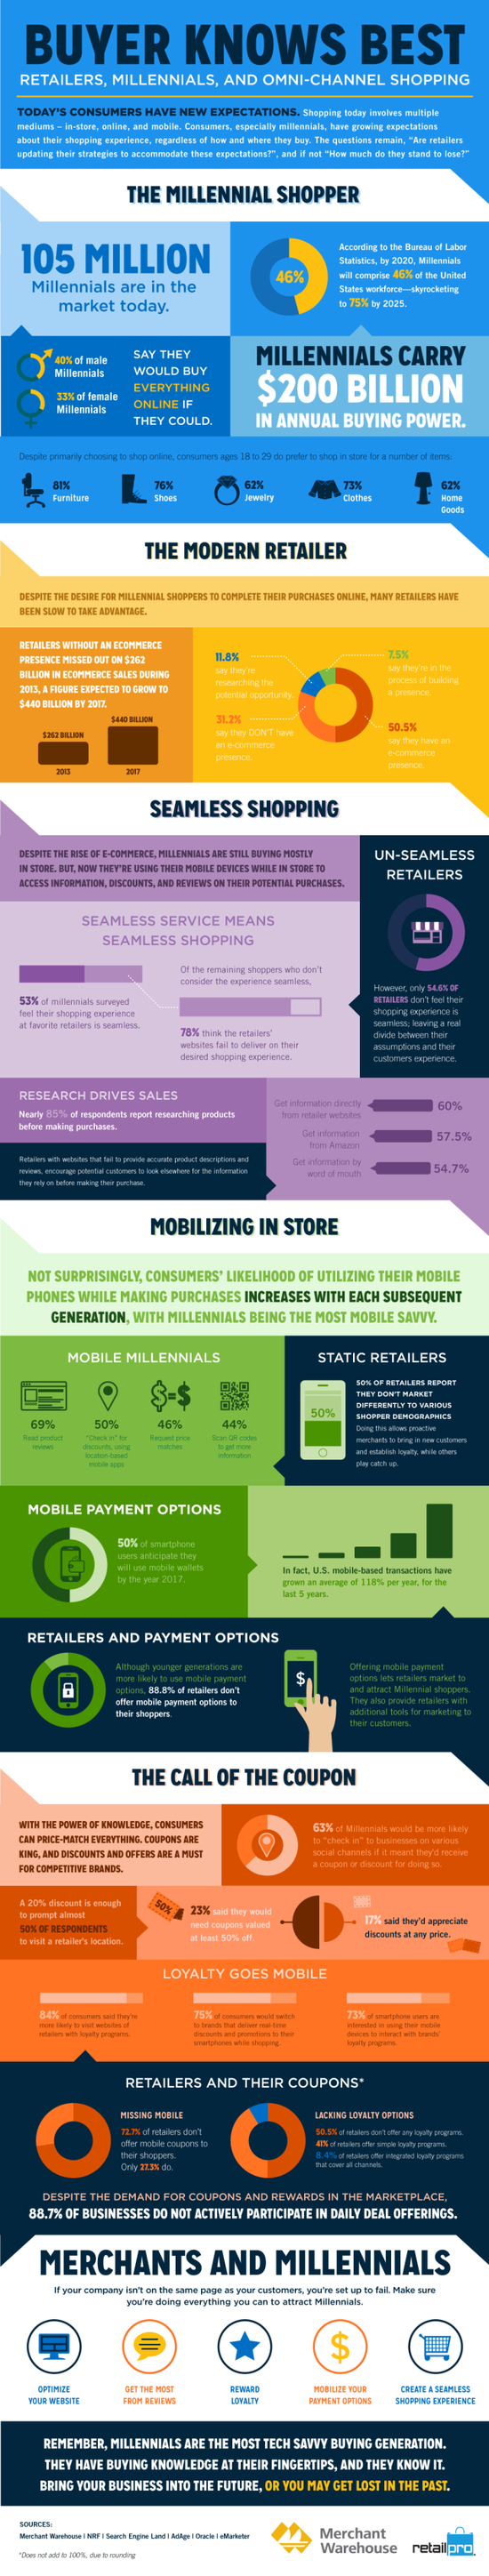 Buyer Knows Best -- Retailers, Millenials and Omnichannel Marketing - Merchant Warehouse, NRF